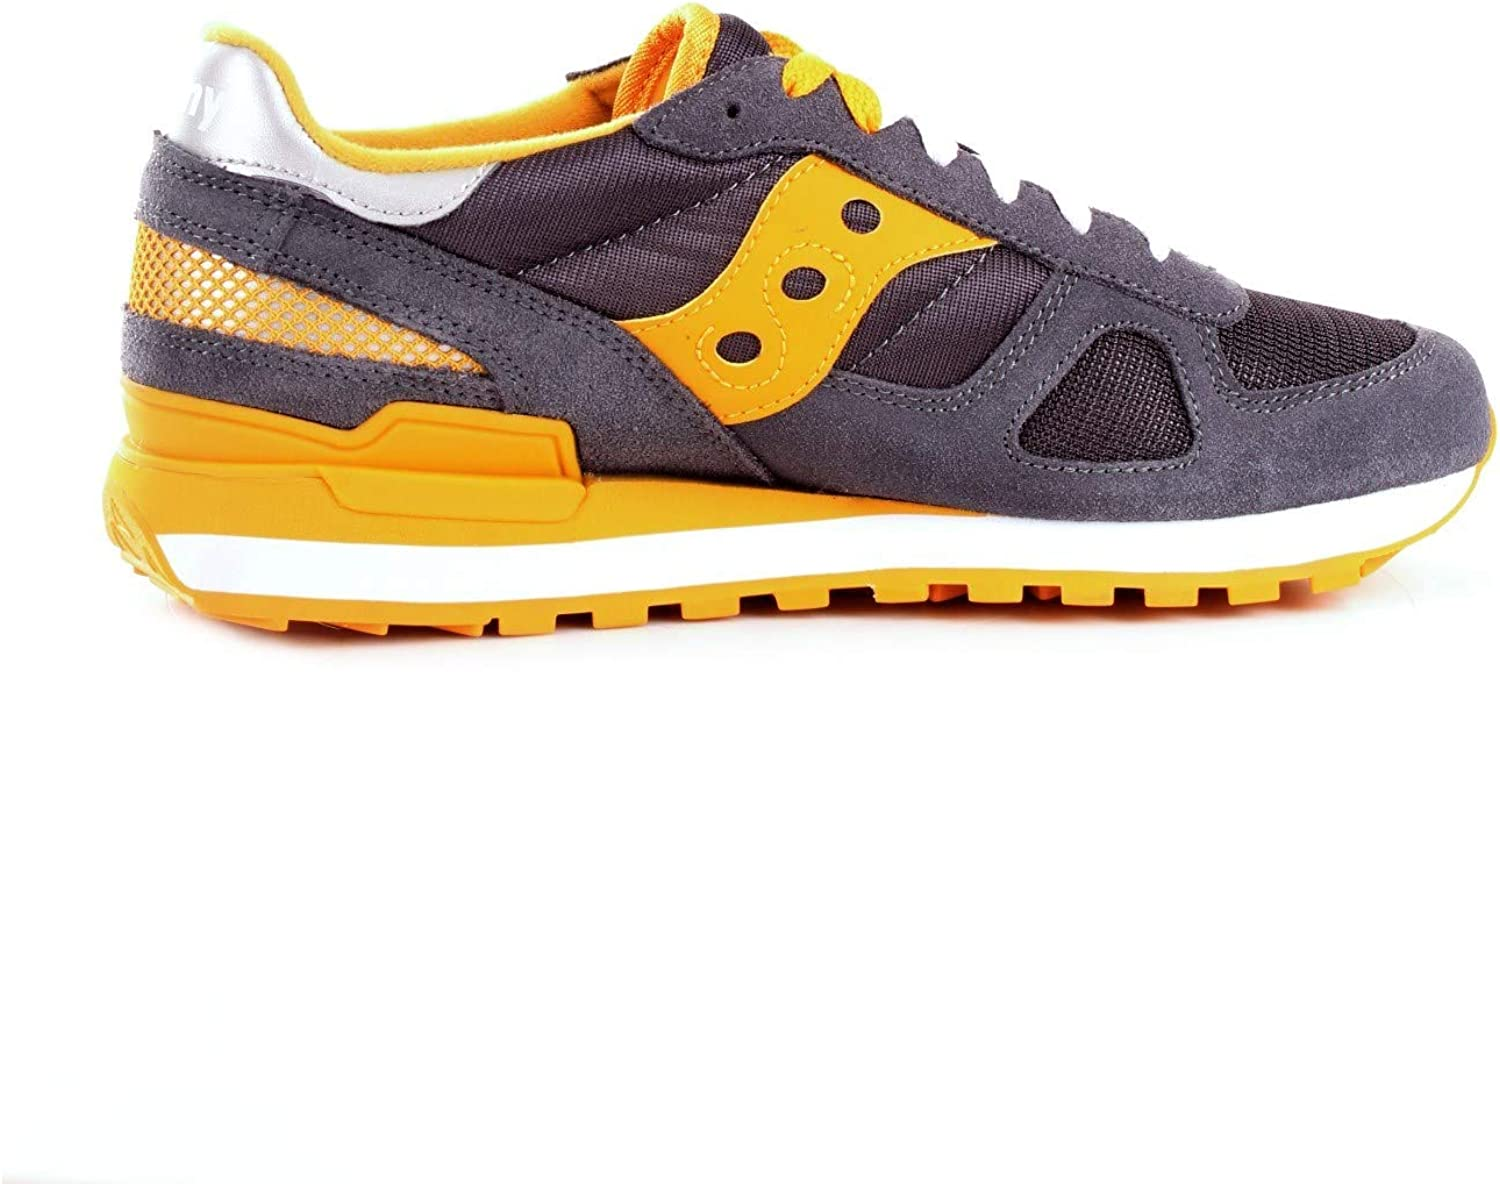 Saucony Jazz Original, Zapatillas de Cross para Hombre: MainApps: Amazon.es: Zapatos y complementos